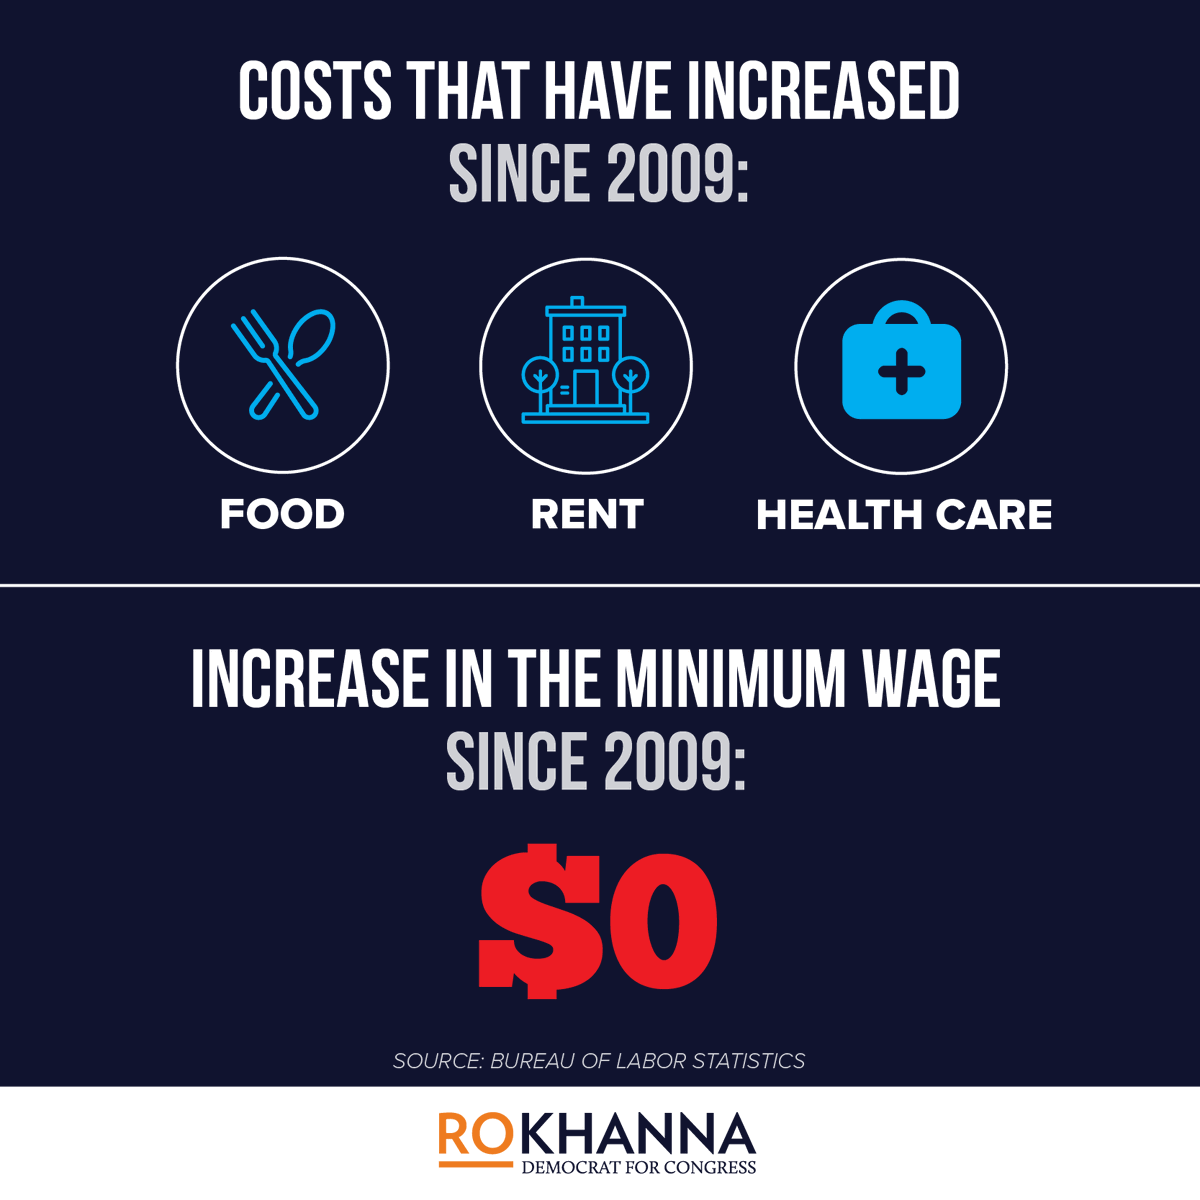 People in many states are earning the same minimum wage they earned in 2009. Unfortunately we cant say the same about the rising cost of living. Change cant wait any longer. I will keep fighting until every American earns AT LEAST $15/hour. #FightFor15